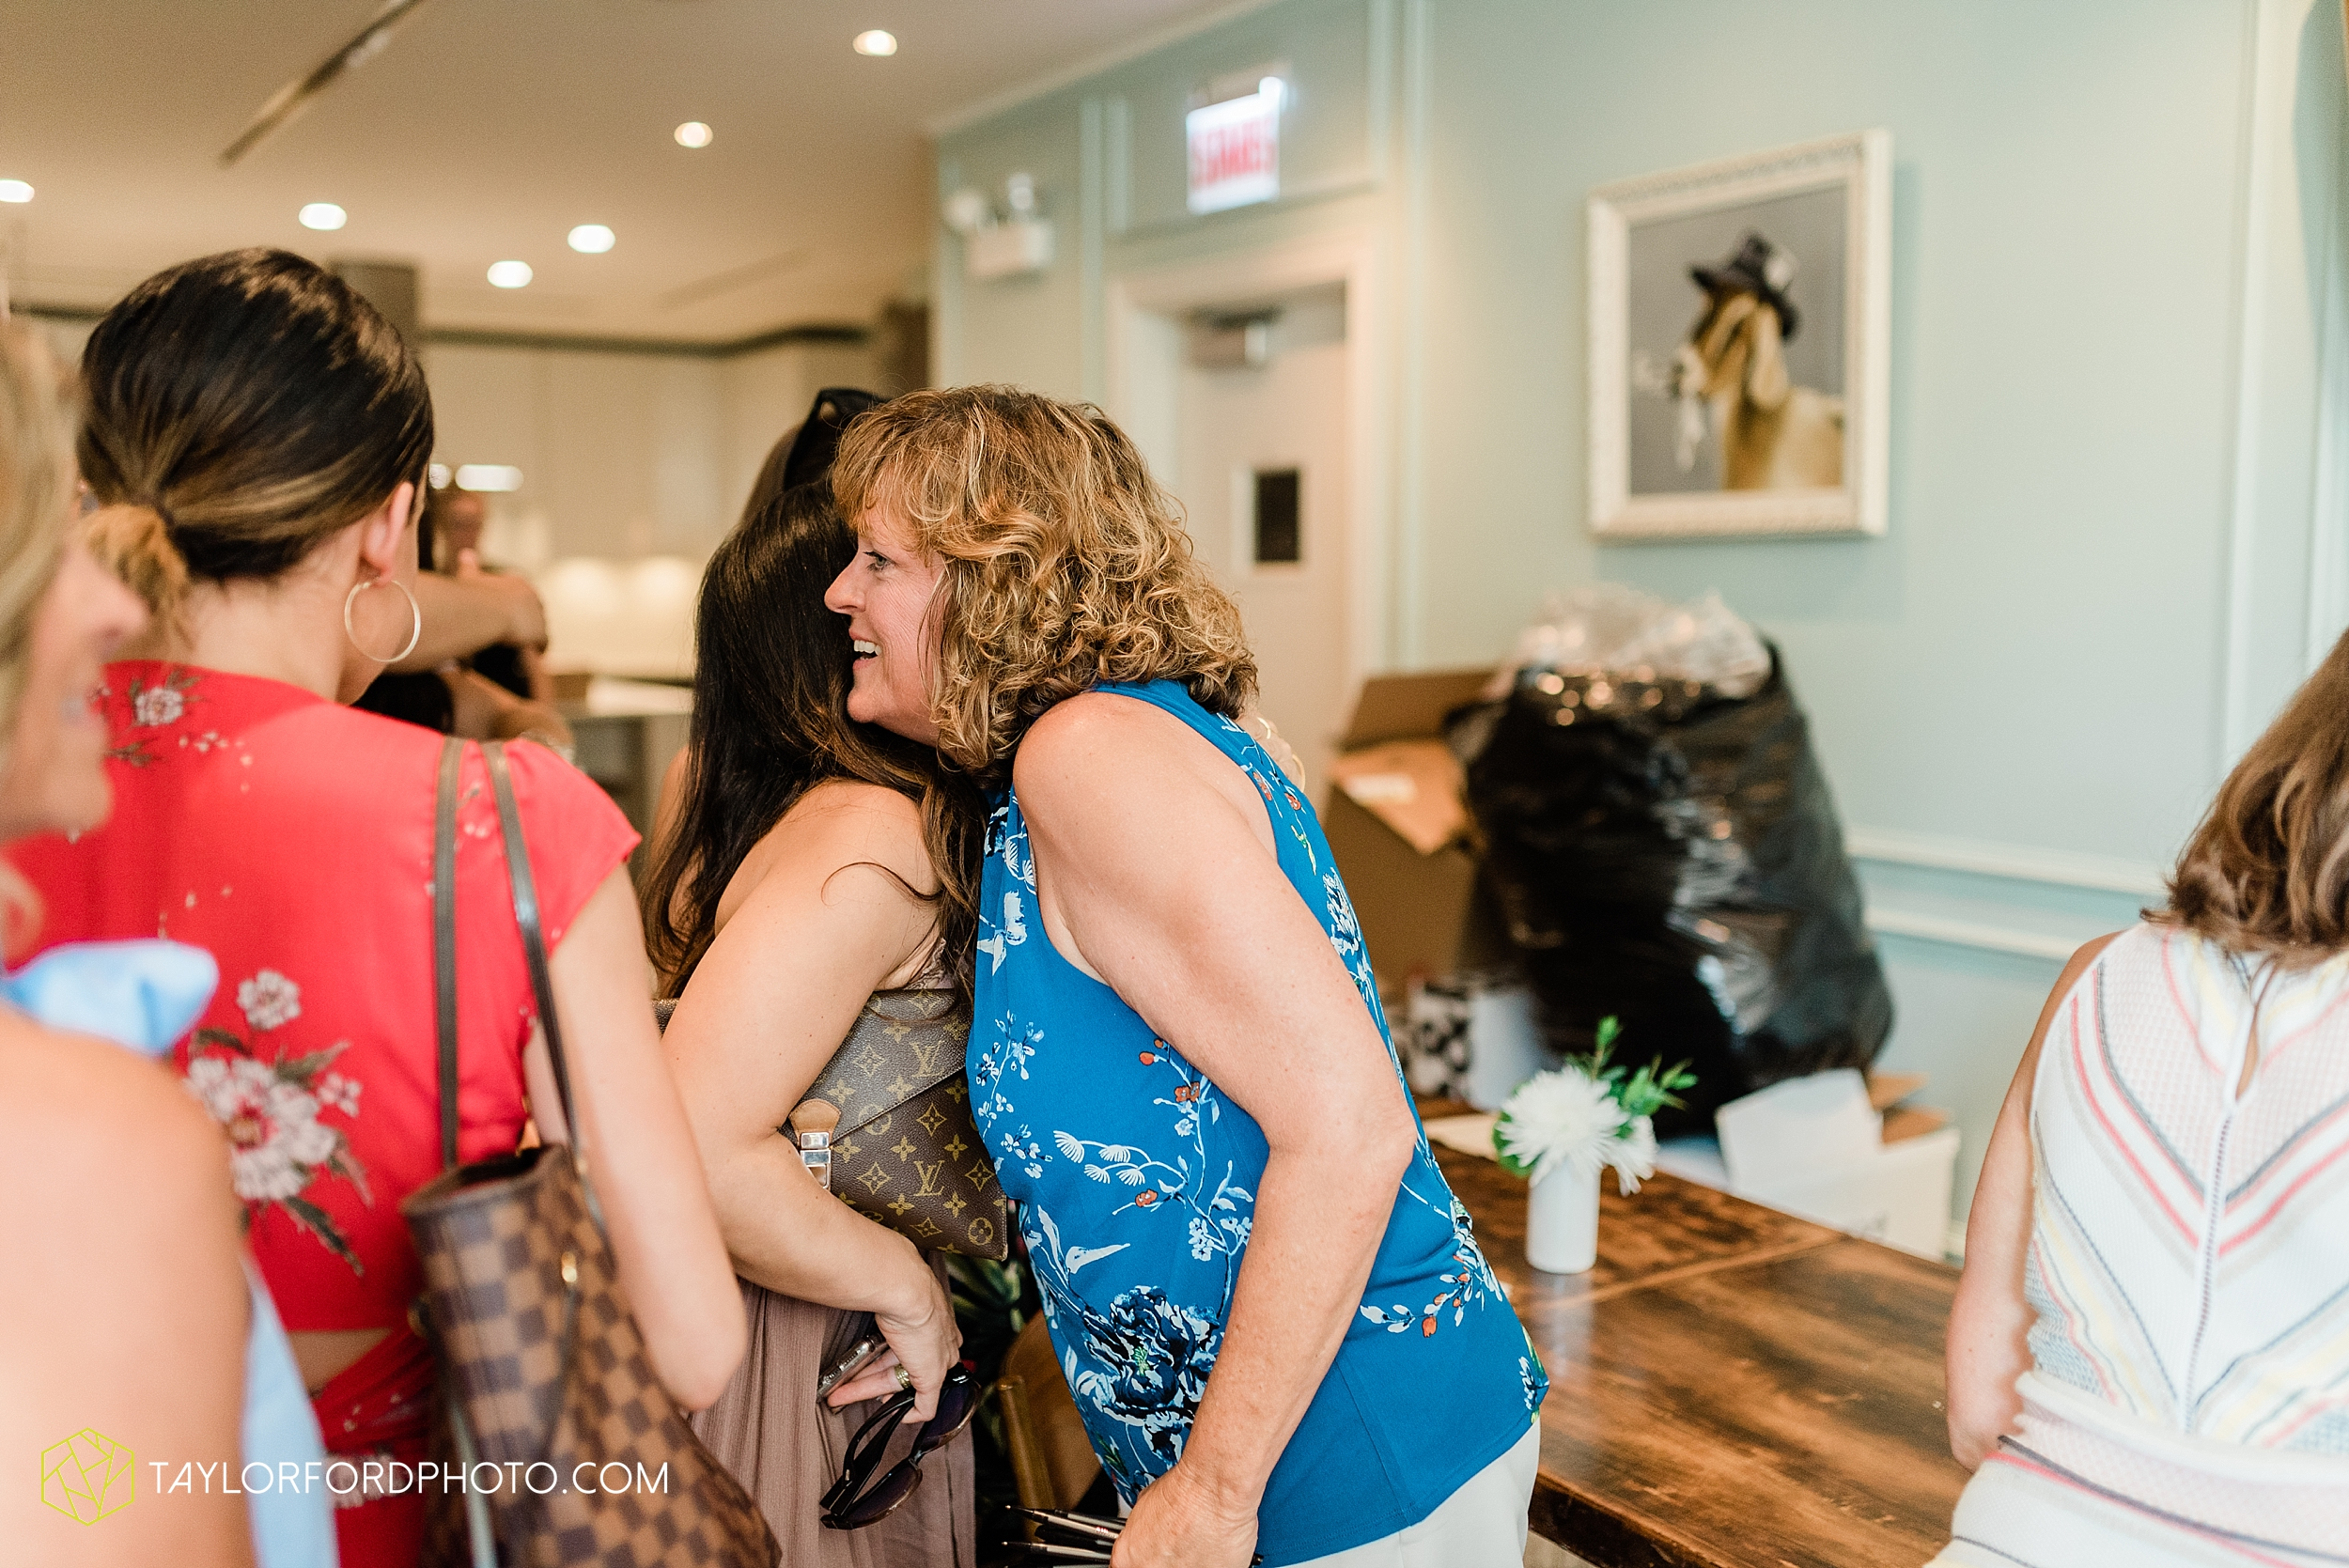 chicago-illinois-bridal-shower-little-goat-diner-west-loop-wedding-photographer-taylor-ford-photographer_8877.jpg